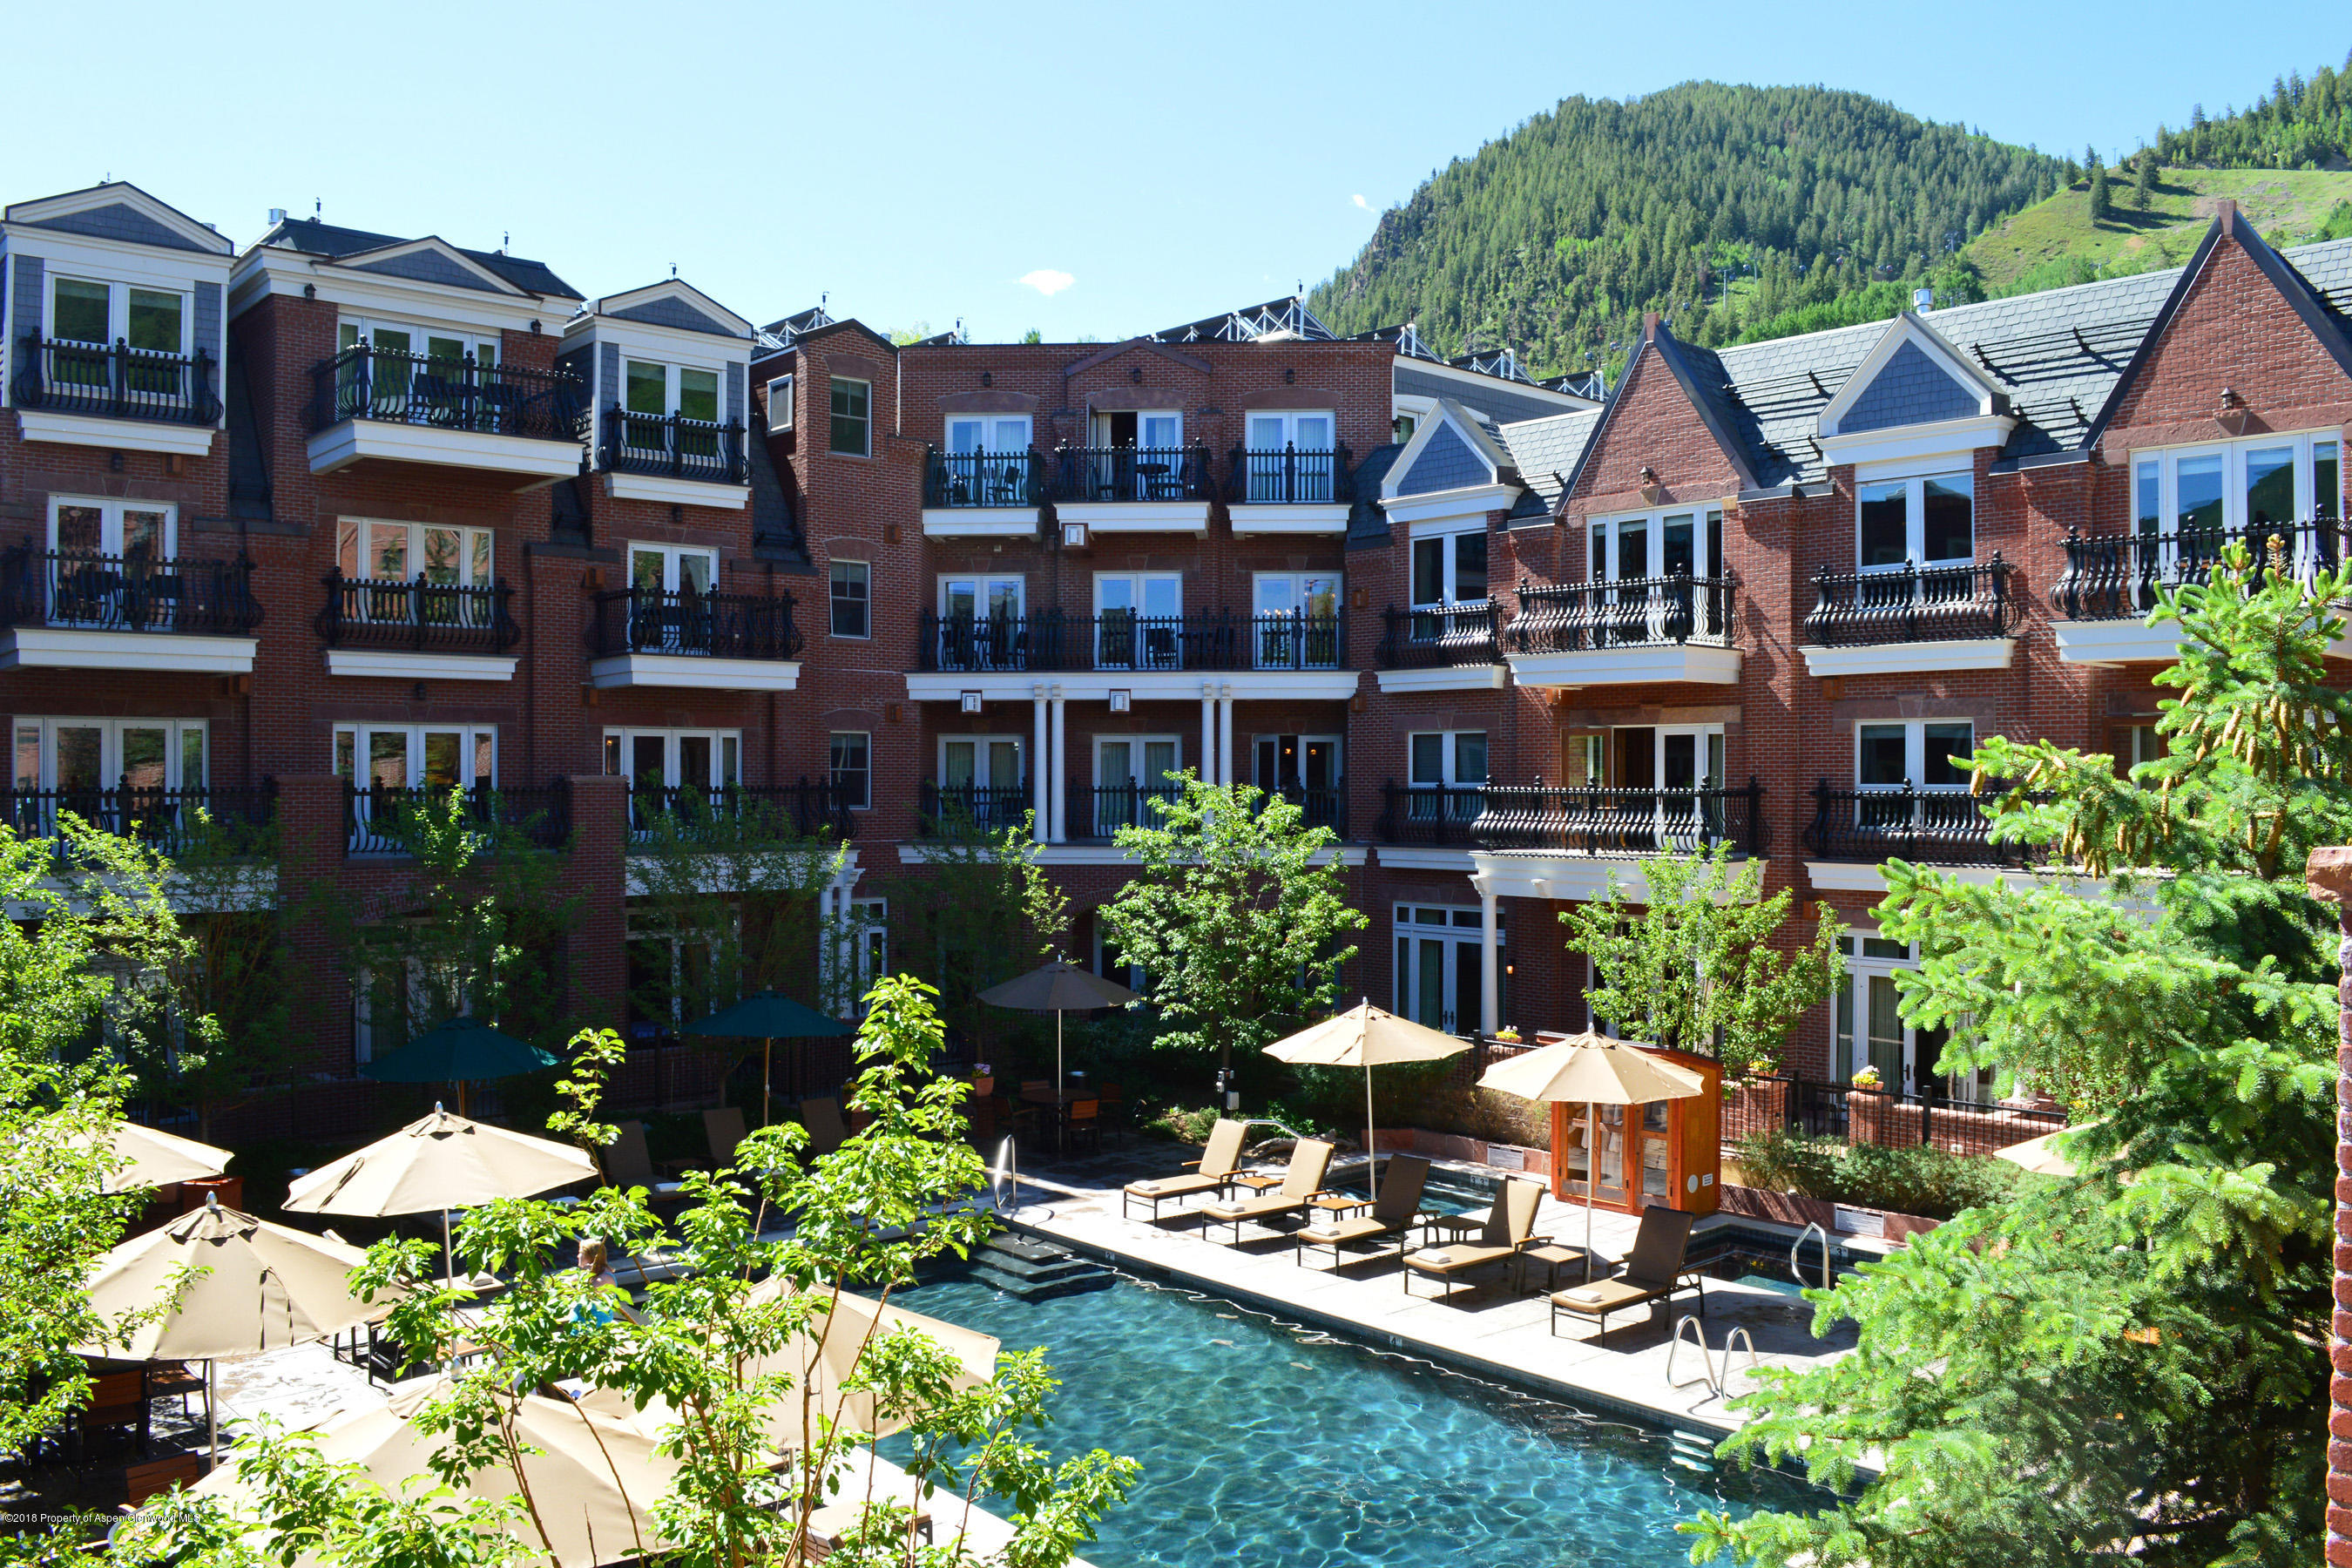 415 E Dean Street, Unit 44C W - Aspen, Colorado